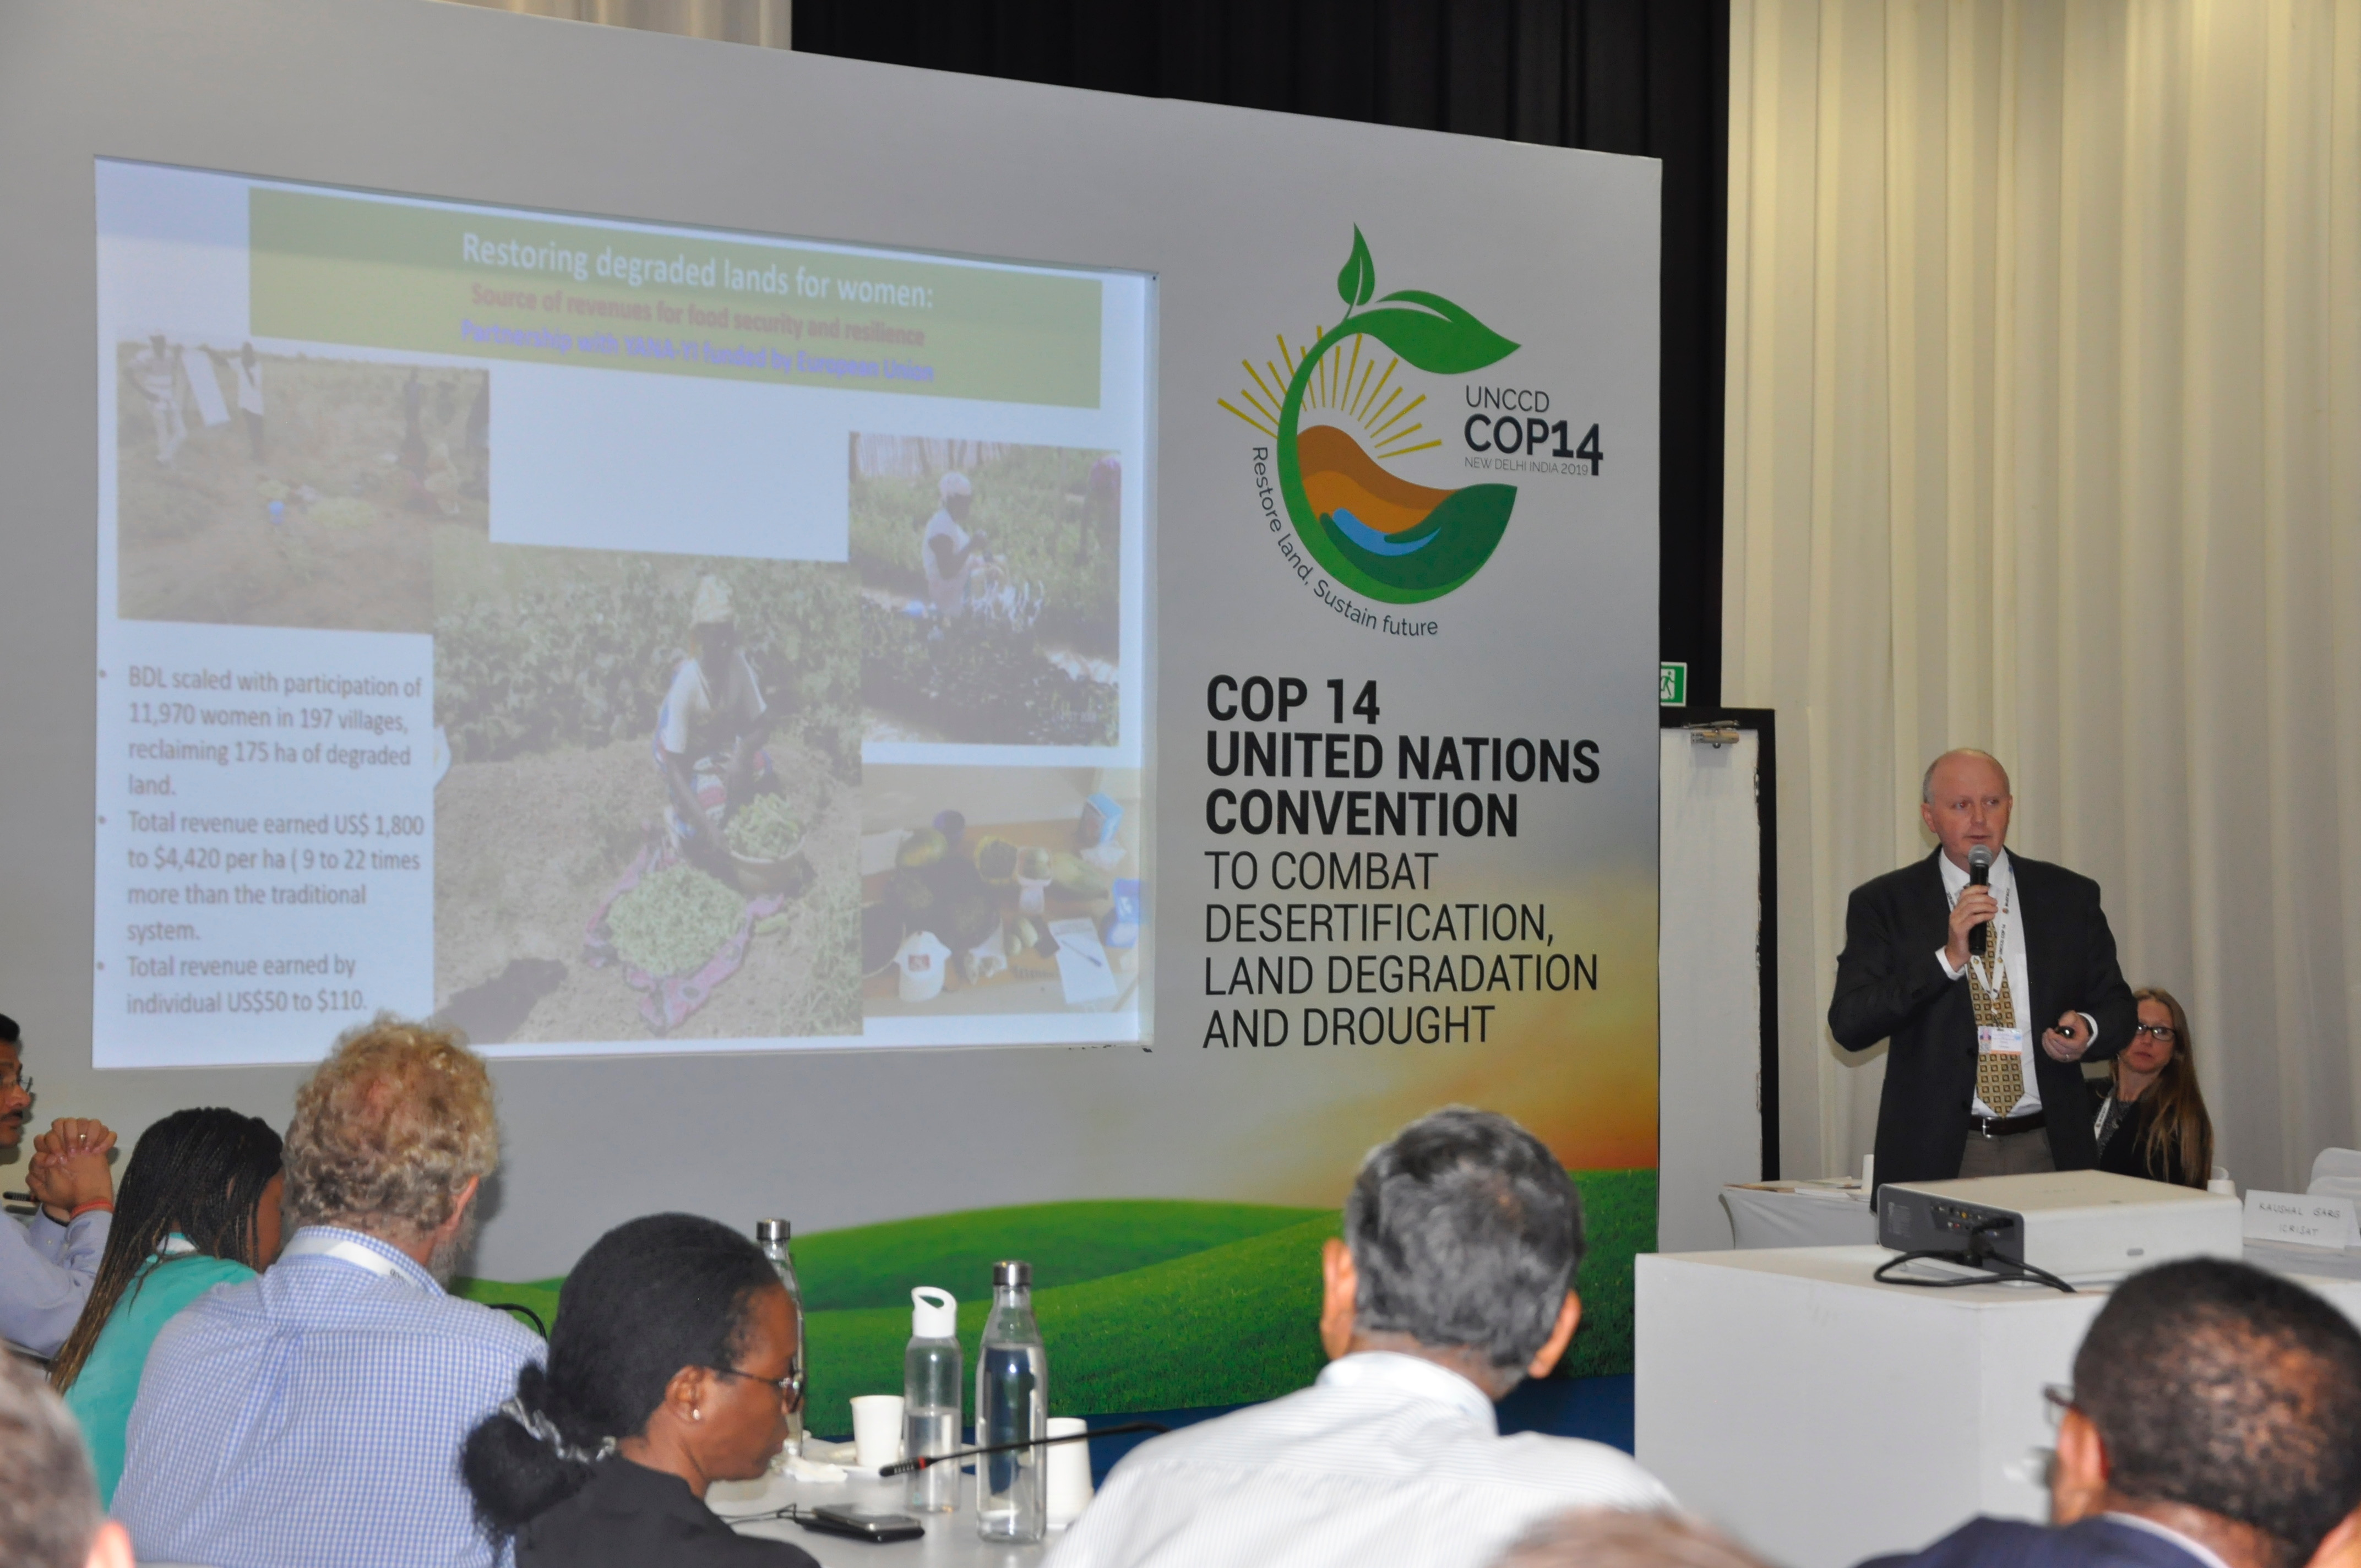 Dr Anthony Whitbread speaks about the gender significance of land restoration in Niger.